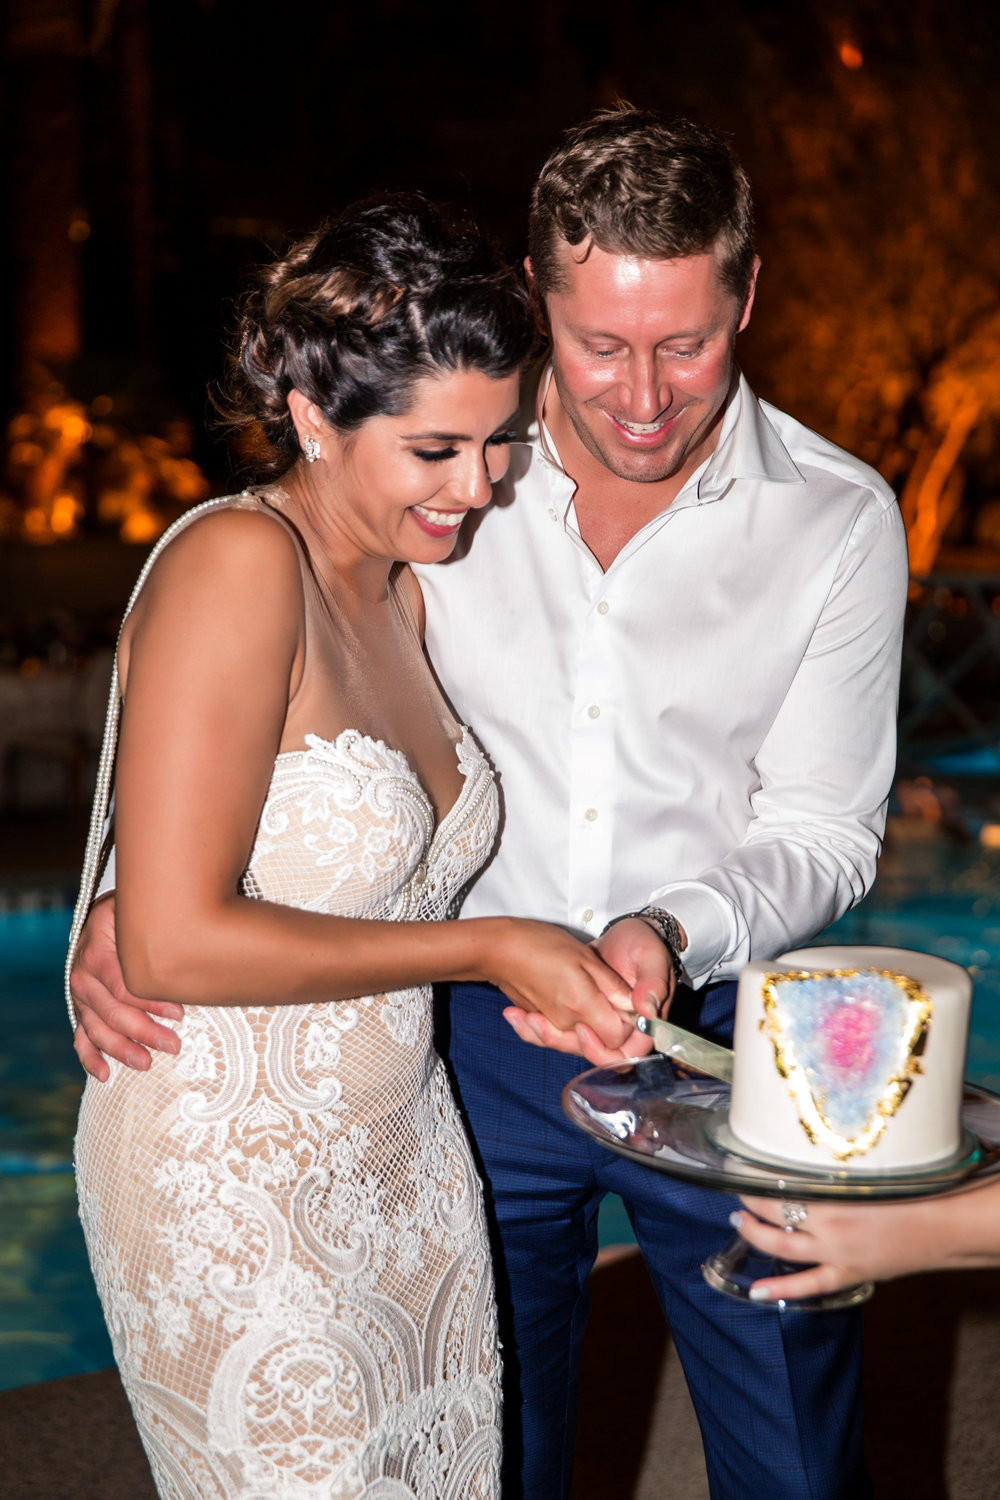 Cutting the top tier of the wedding cake. First dance on bridge over pool. Jewel toned wedding centerpieces with gold accents. Wedding Planning by  Andrea Eppolito Events   ·  Photography by  Shandro Photo    ·  Wedding Venue  Four Seasons Las Vegas   ·  Floral and Decor by  Destination by Design   ·  Cake by  Four Seasons Las Vegas   ·  Chandeliers and Lighting by  LED Unplugged   ·  Dress by  Berta   and Menu by Alligator Soup